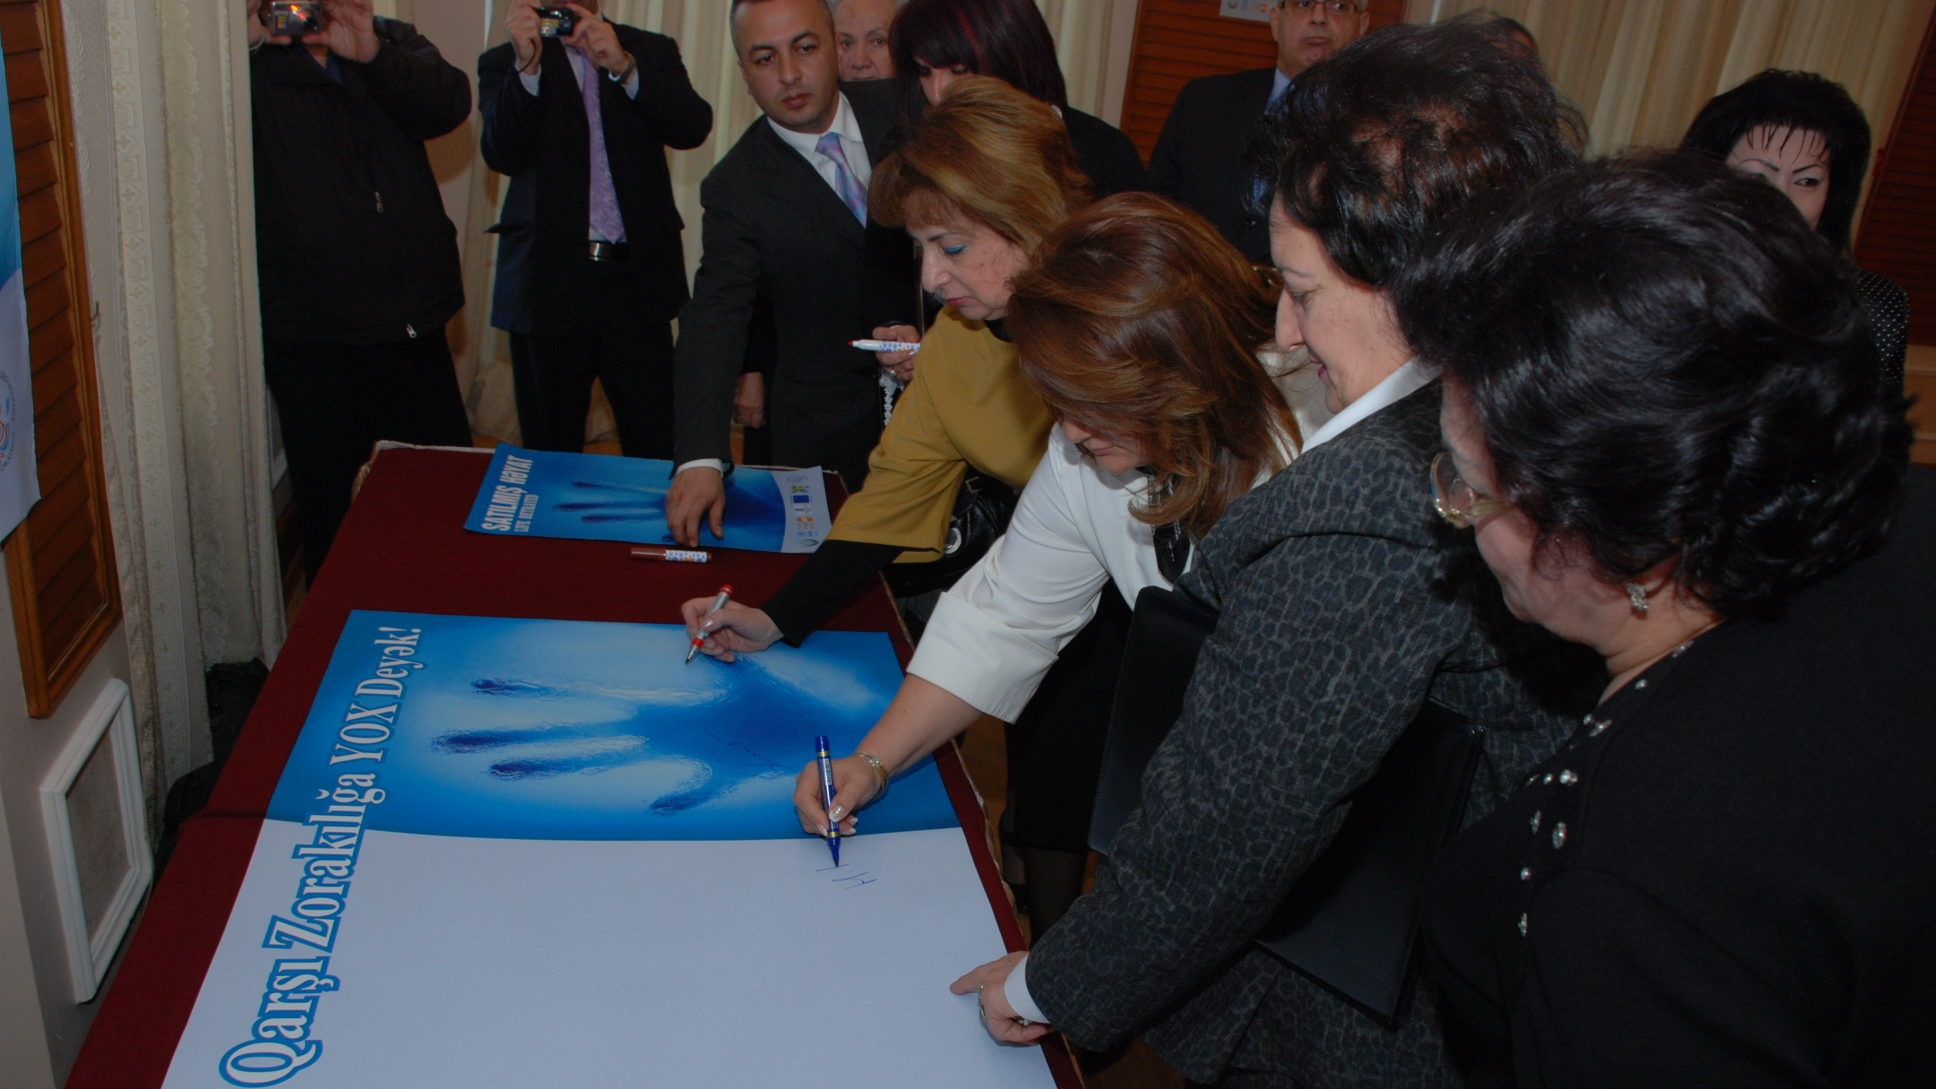 Head of State Committee for Family, Women and Children's Affairs Hijran Huseynova signs the signature poster of WARD to advocate for adoption of Law on Domestic Violence in 2009